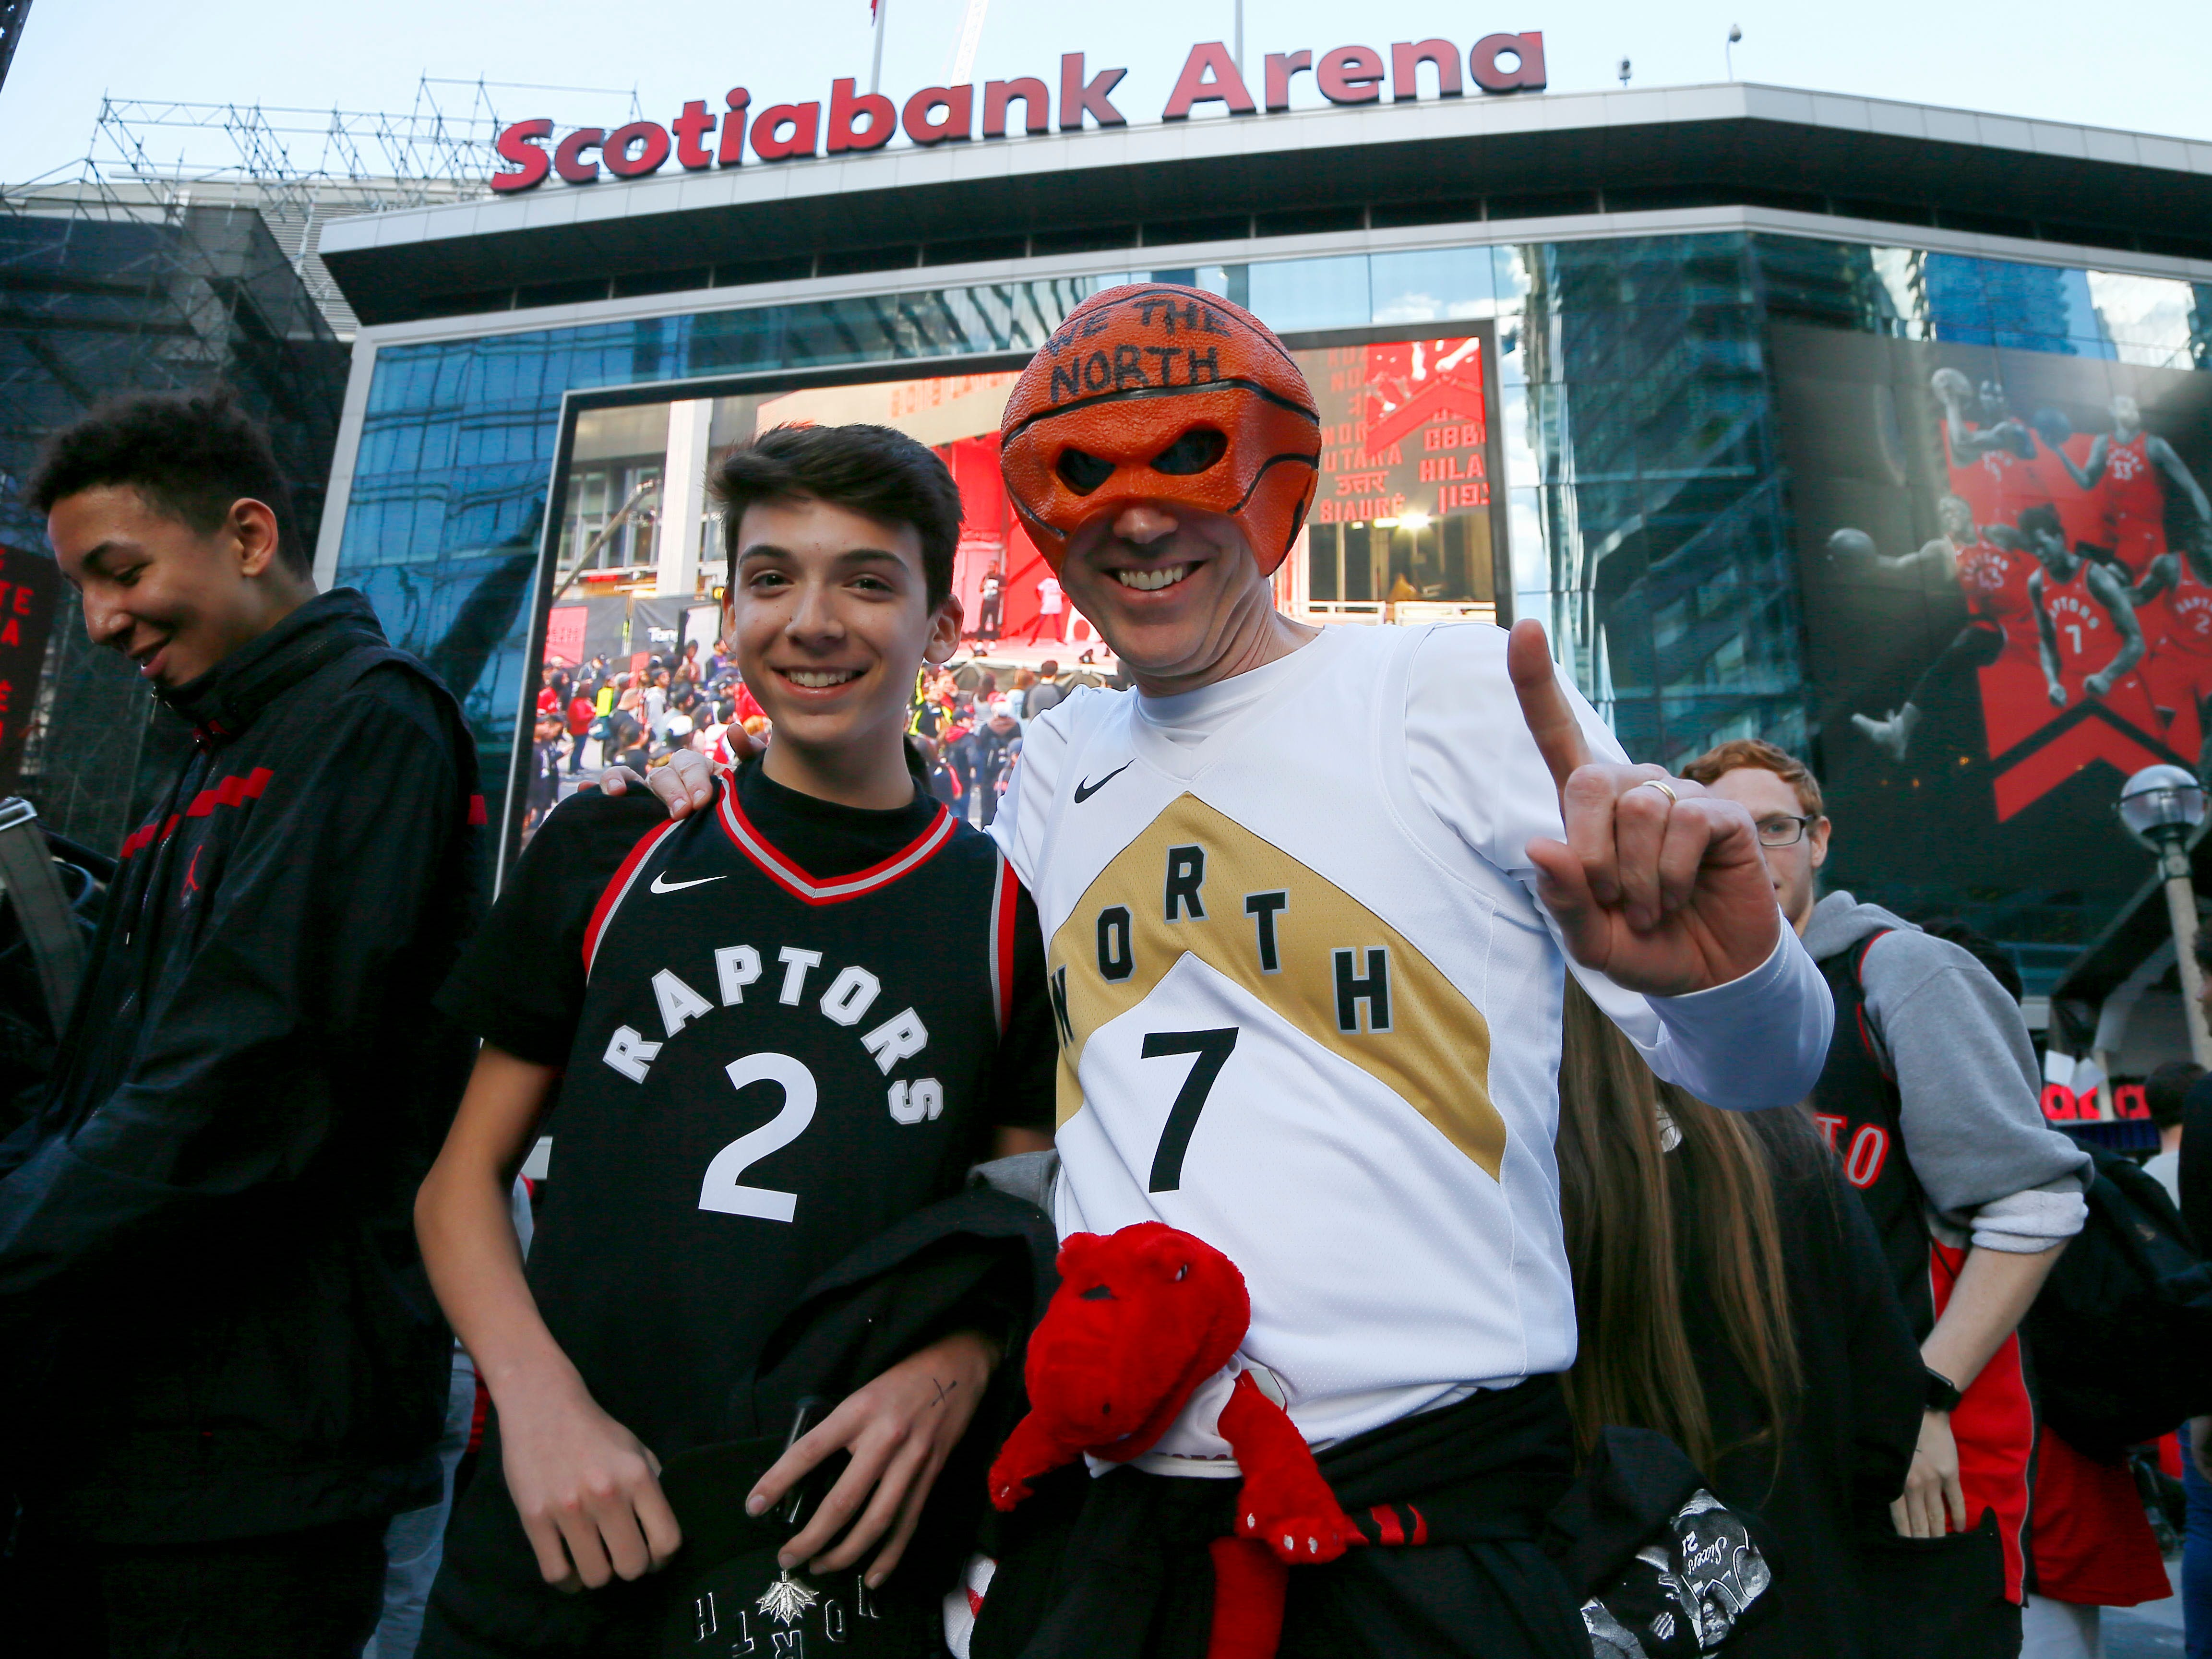 May 21: Toronto Raptors fans pose for a photo outside of Scotiabank Arena prior to Game 4 of the Eastern Conference finals.